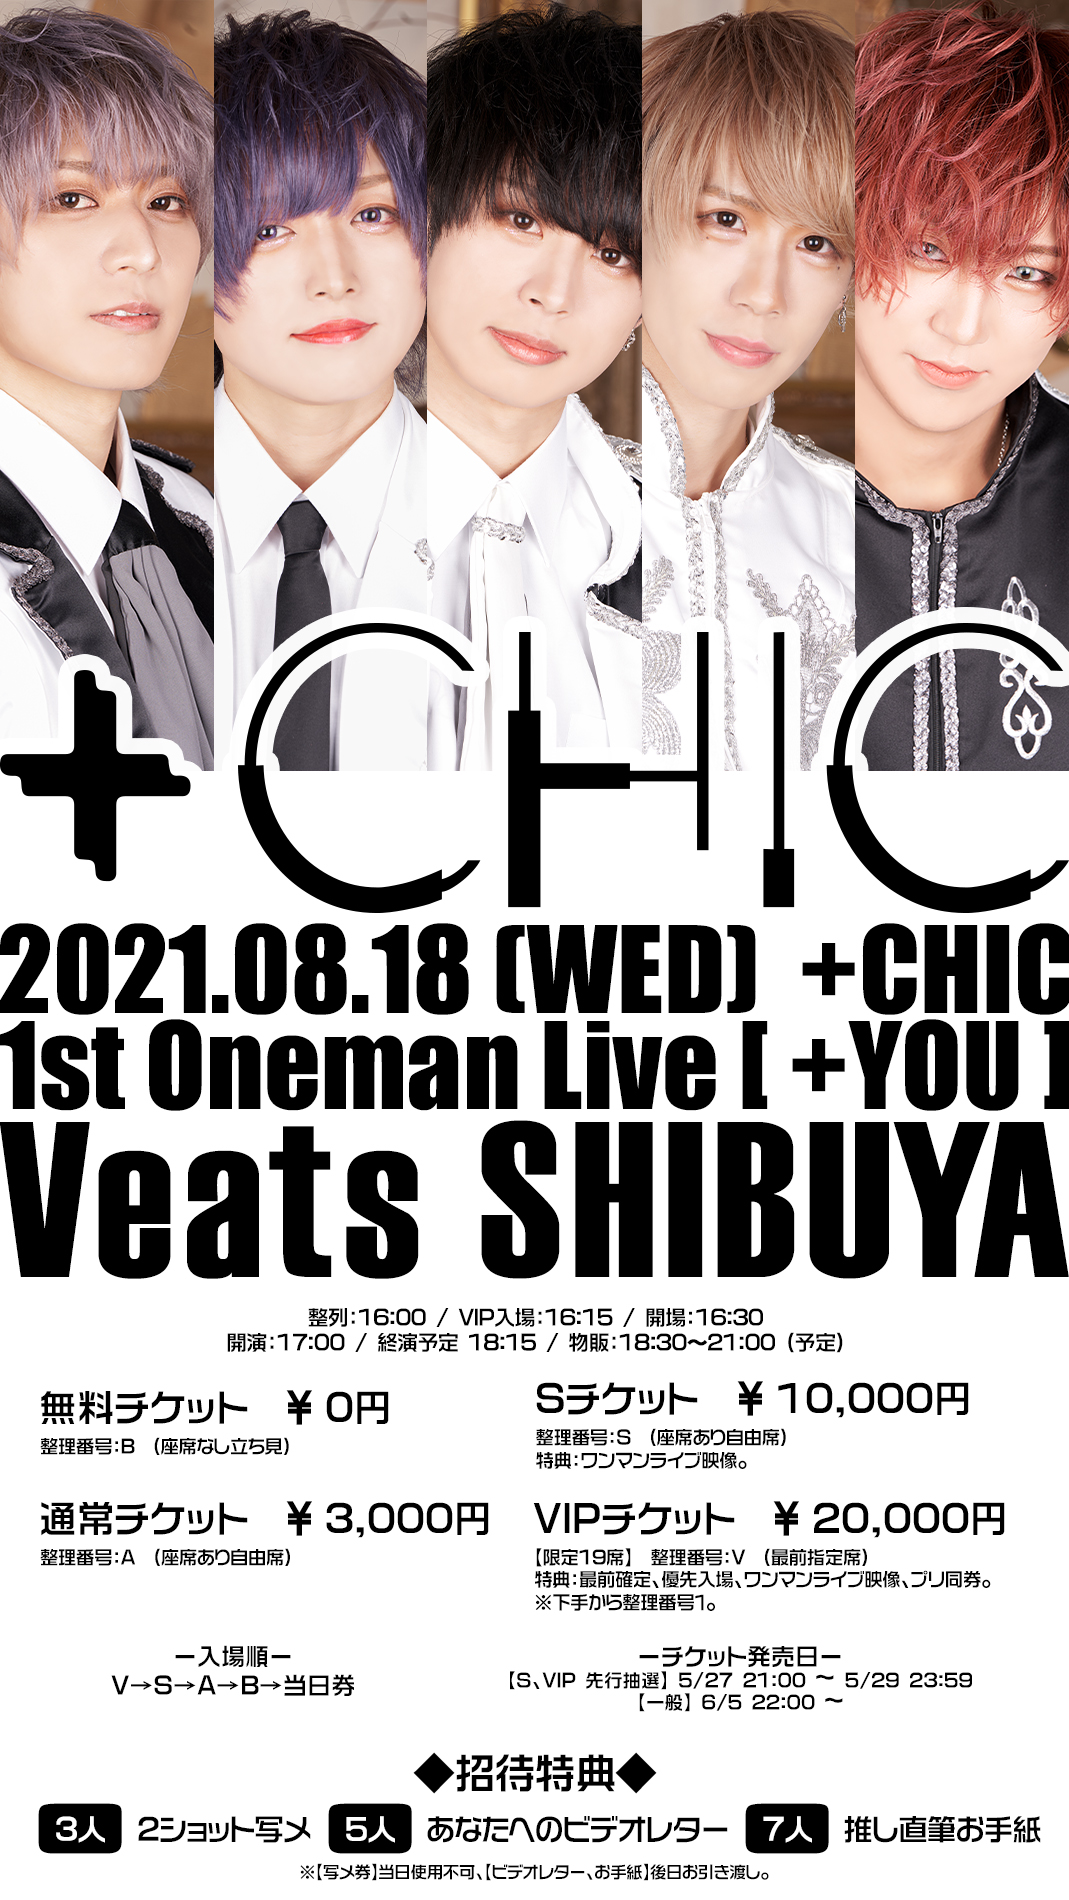 +CHIC 1st Oneman Live 「+YOU」